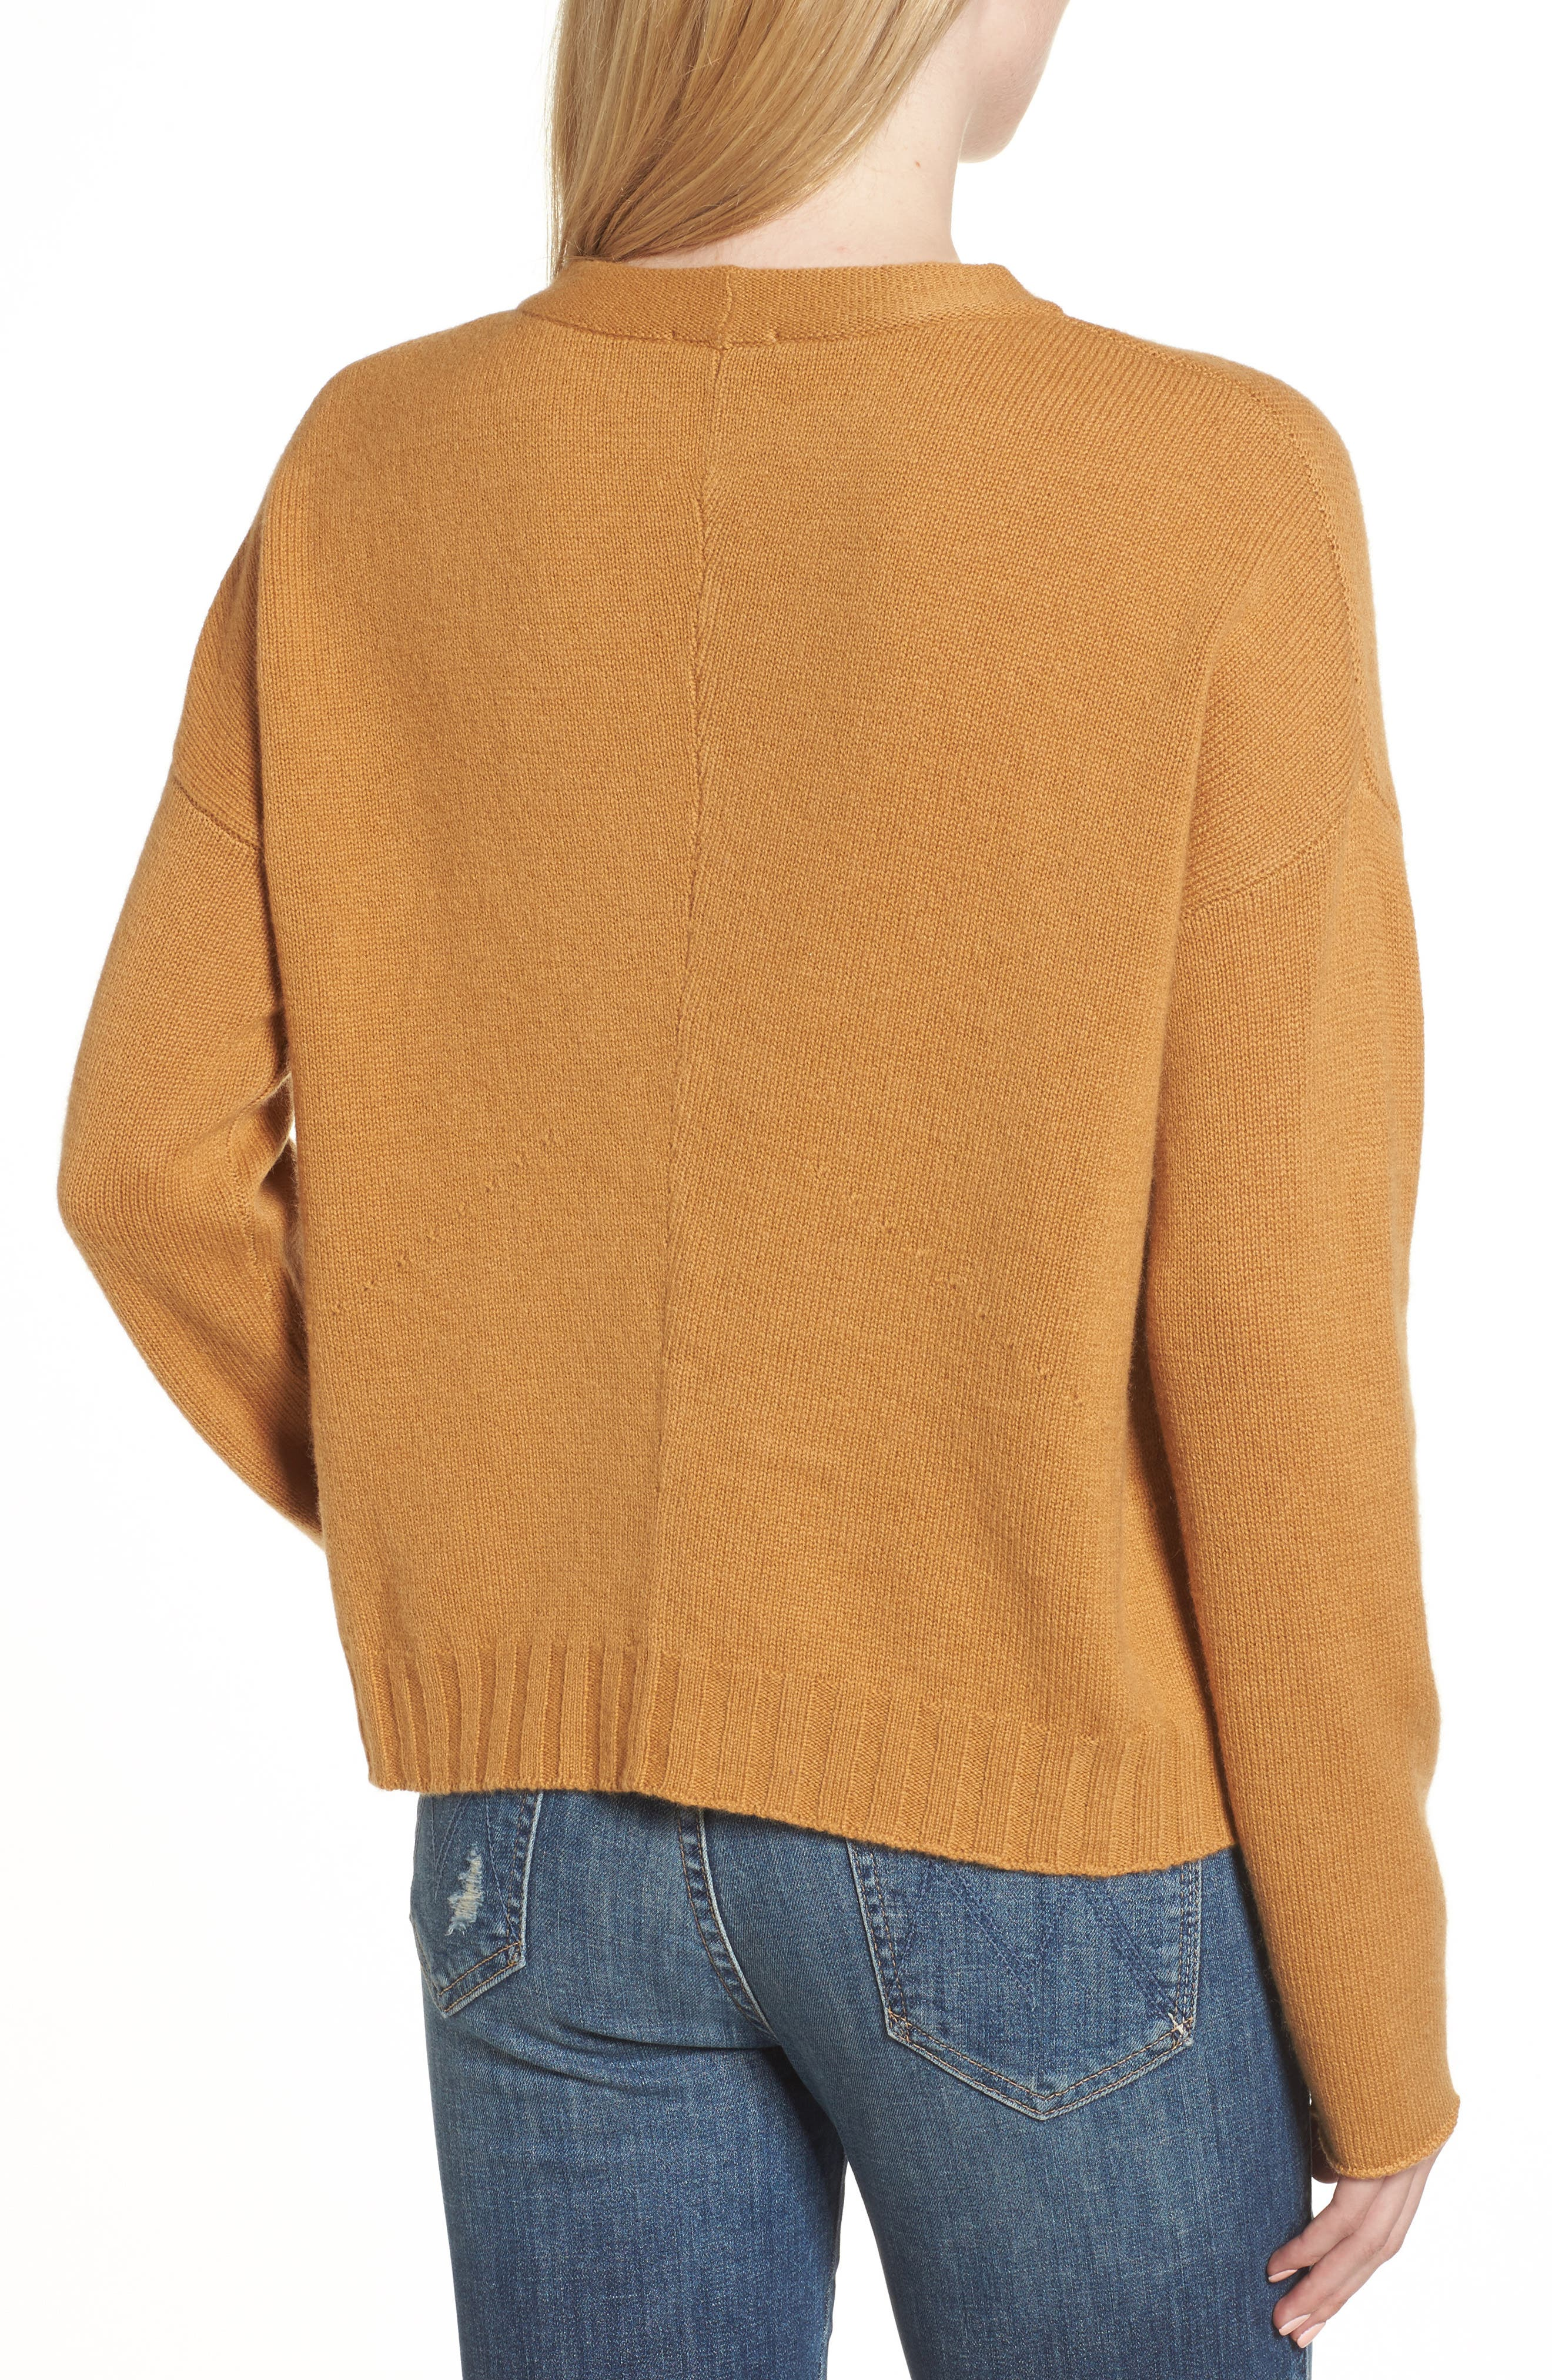 Joanna Wool & Cashmere Sweater,                             Alternate thumbnail 2, color,                             200